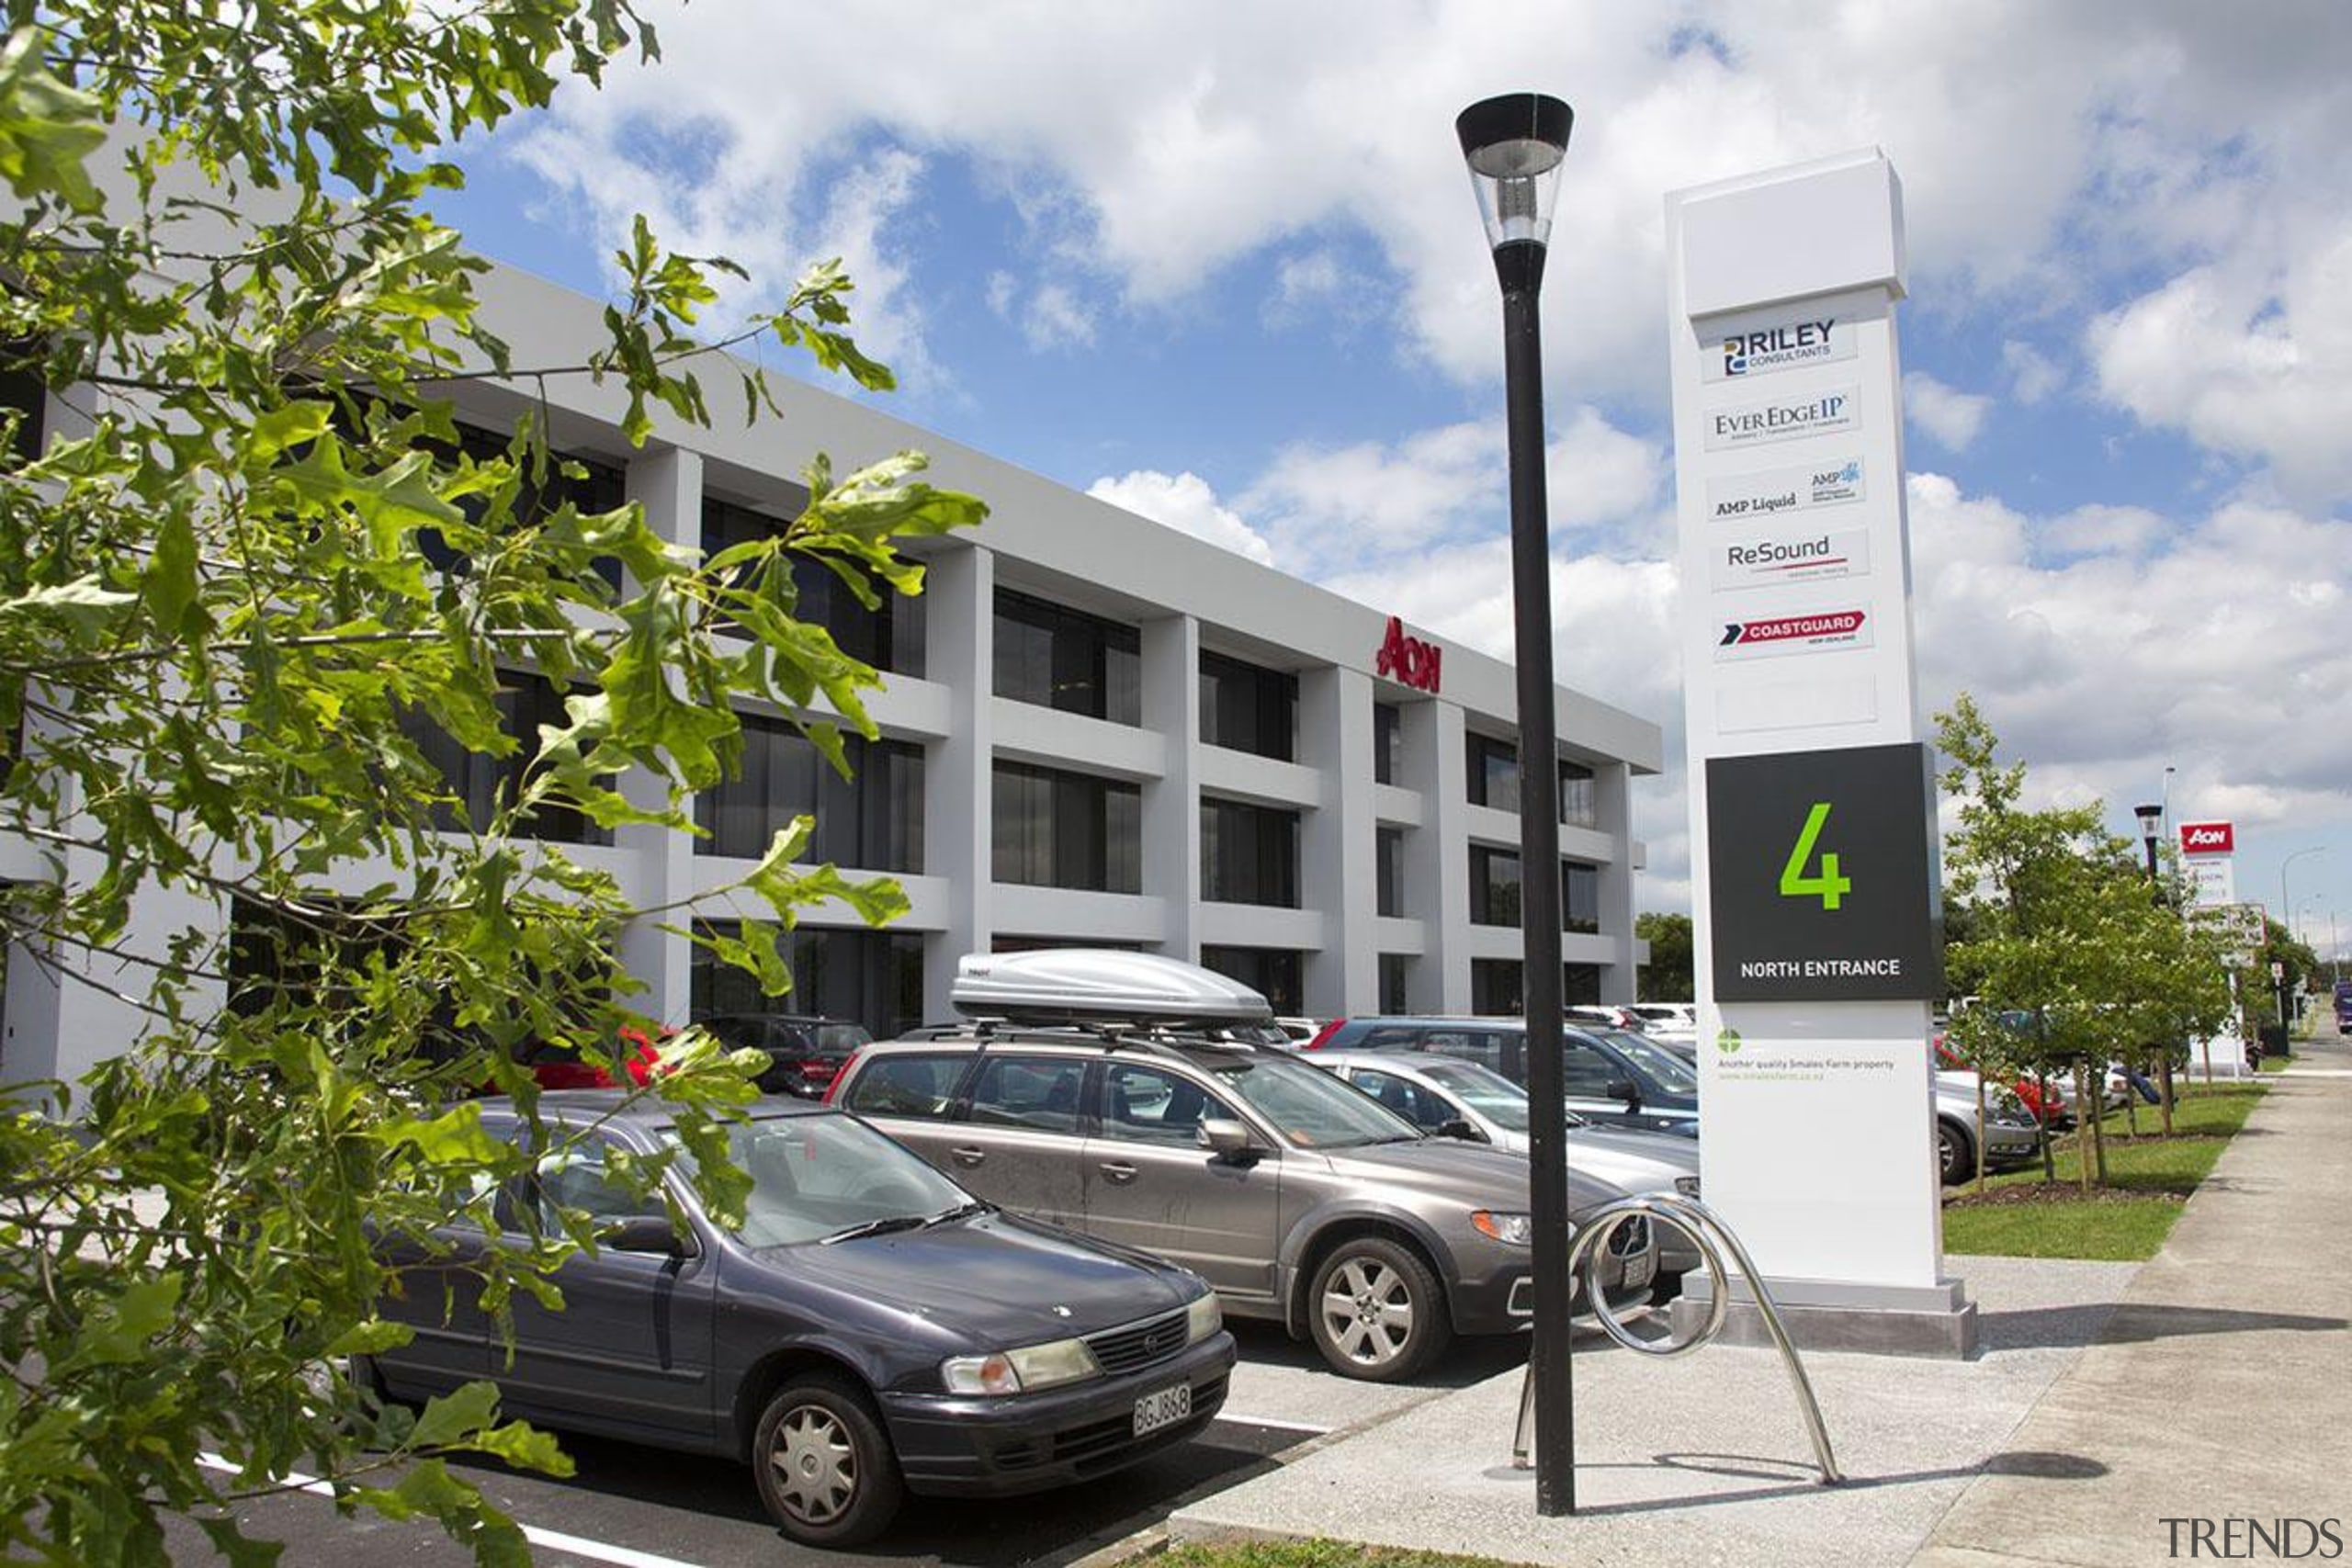 MERIT WINNER2 and 4 Fred Thomas Drive (3 building, car, family car, luxury vehicle, motor vehicle, parking, plant, real estate, sedan, tree, vehicle, white